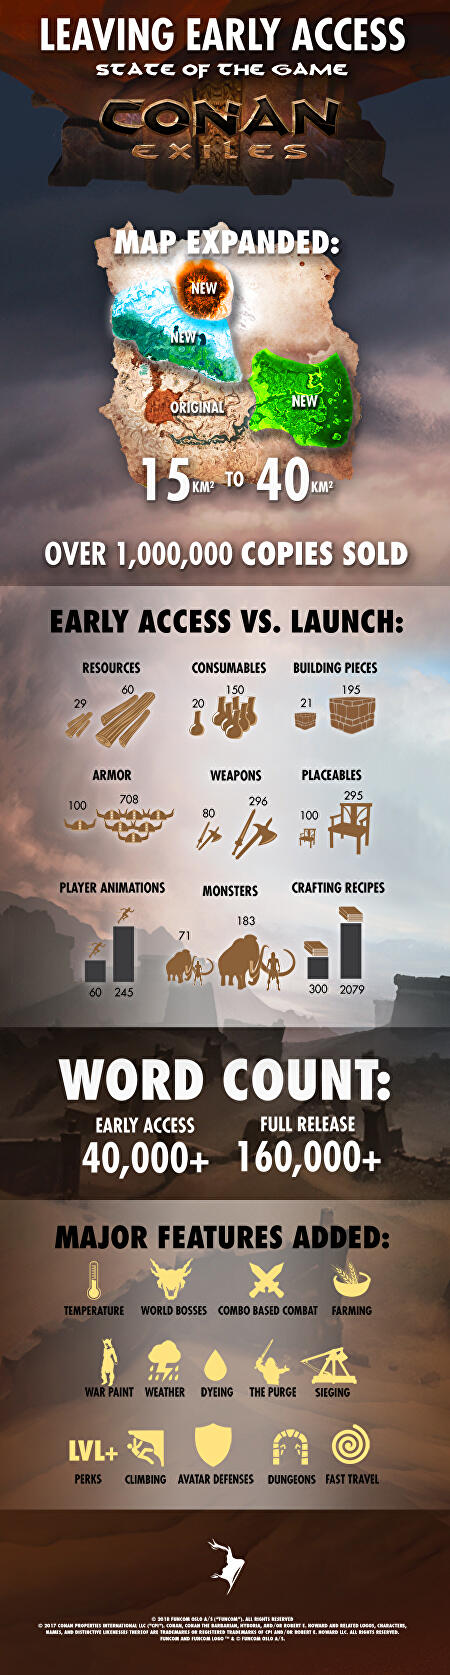 conan exiles early access vs final